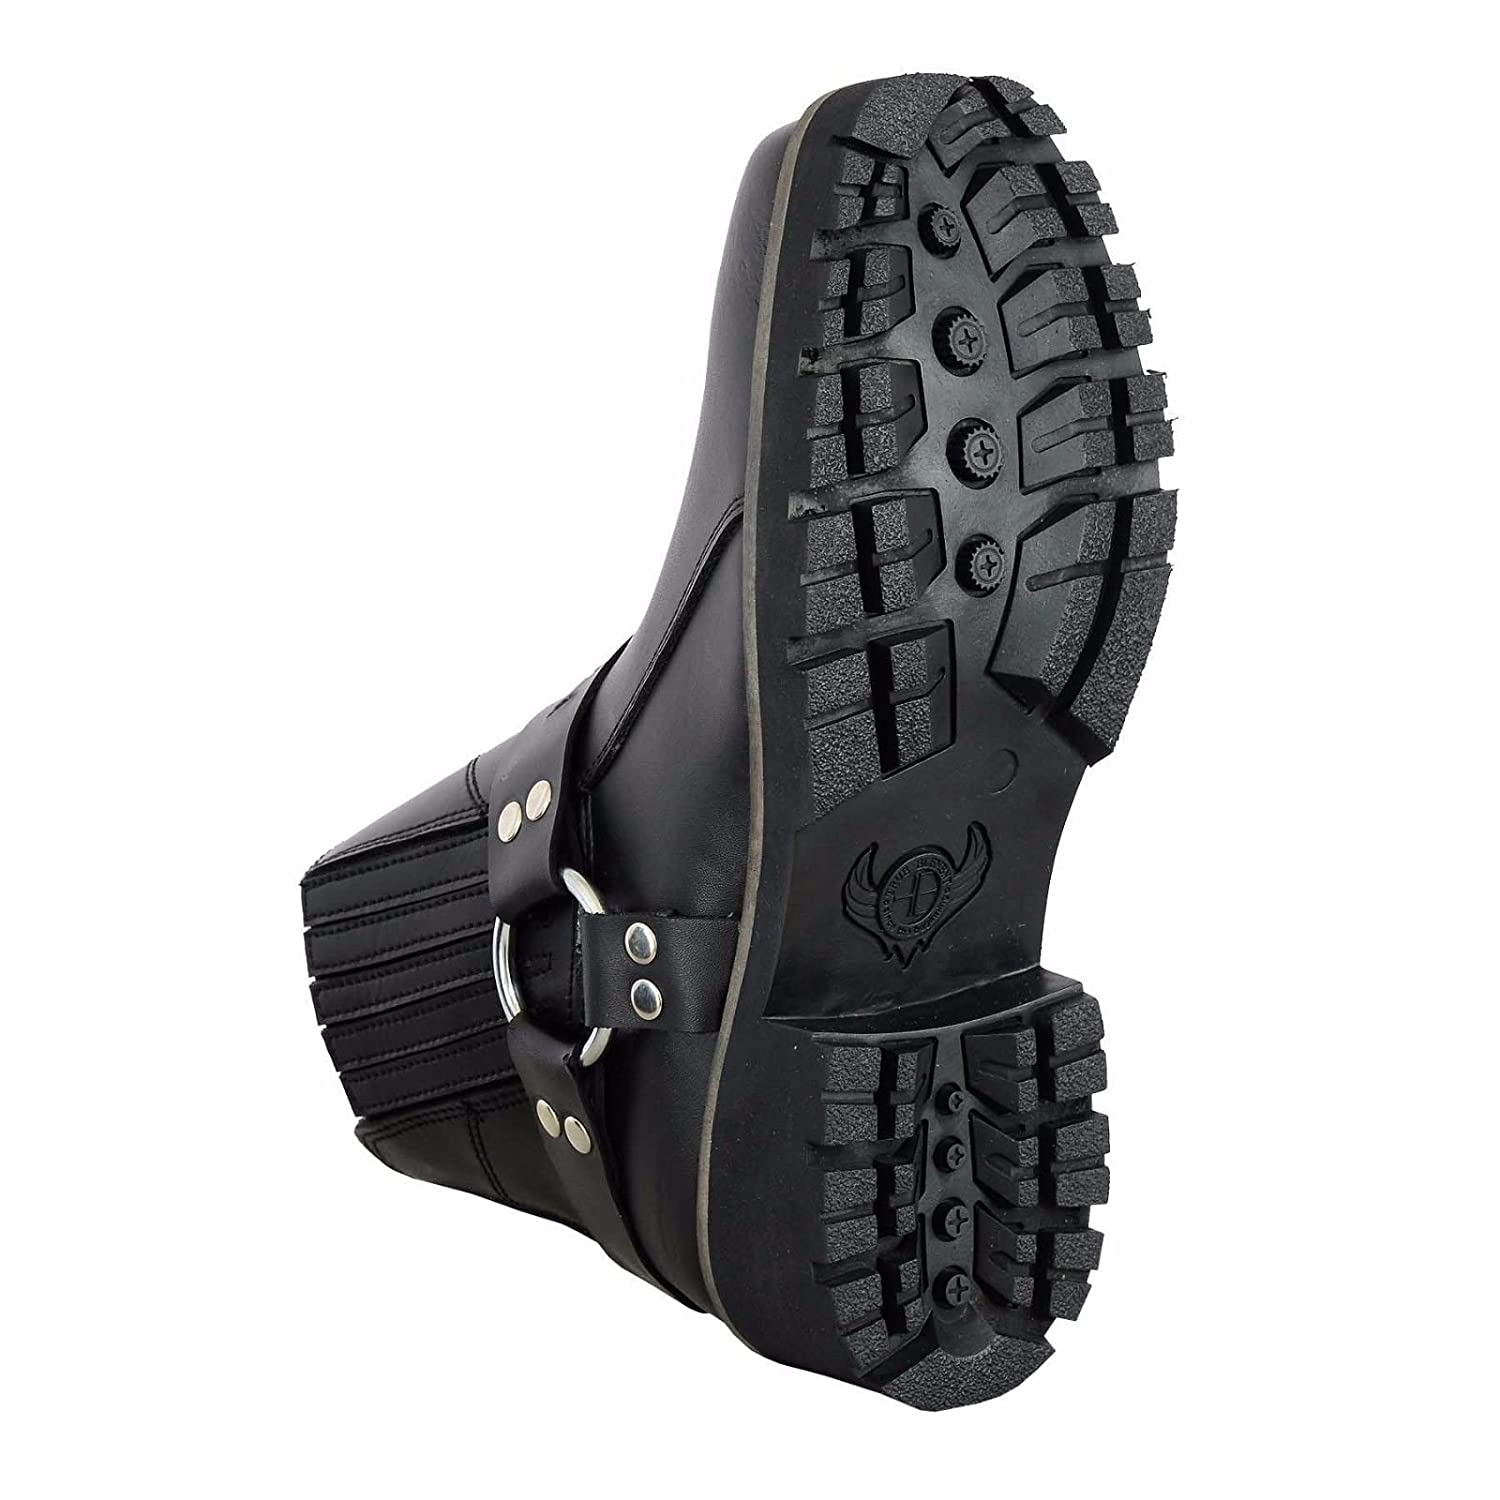 UK 10 // EU 44 Zip Lace /& Strap Free ? Comfort Guaranteed Full Black PROFIRST Pure Leather Pull on Chappar Mens Boots Motorbike Motorcycle Waterproof Touring Short Shoes